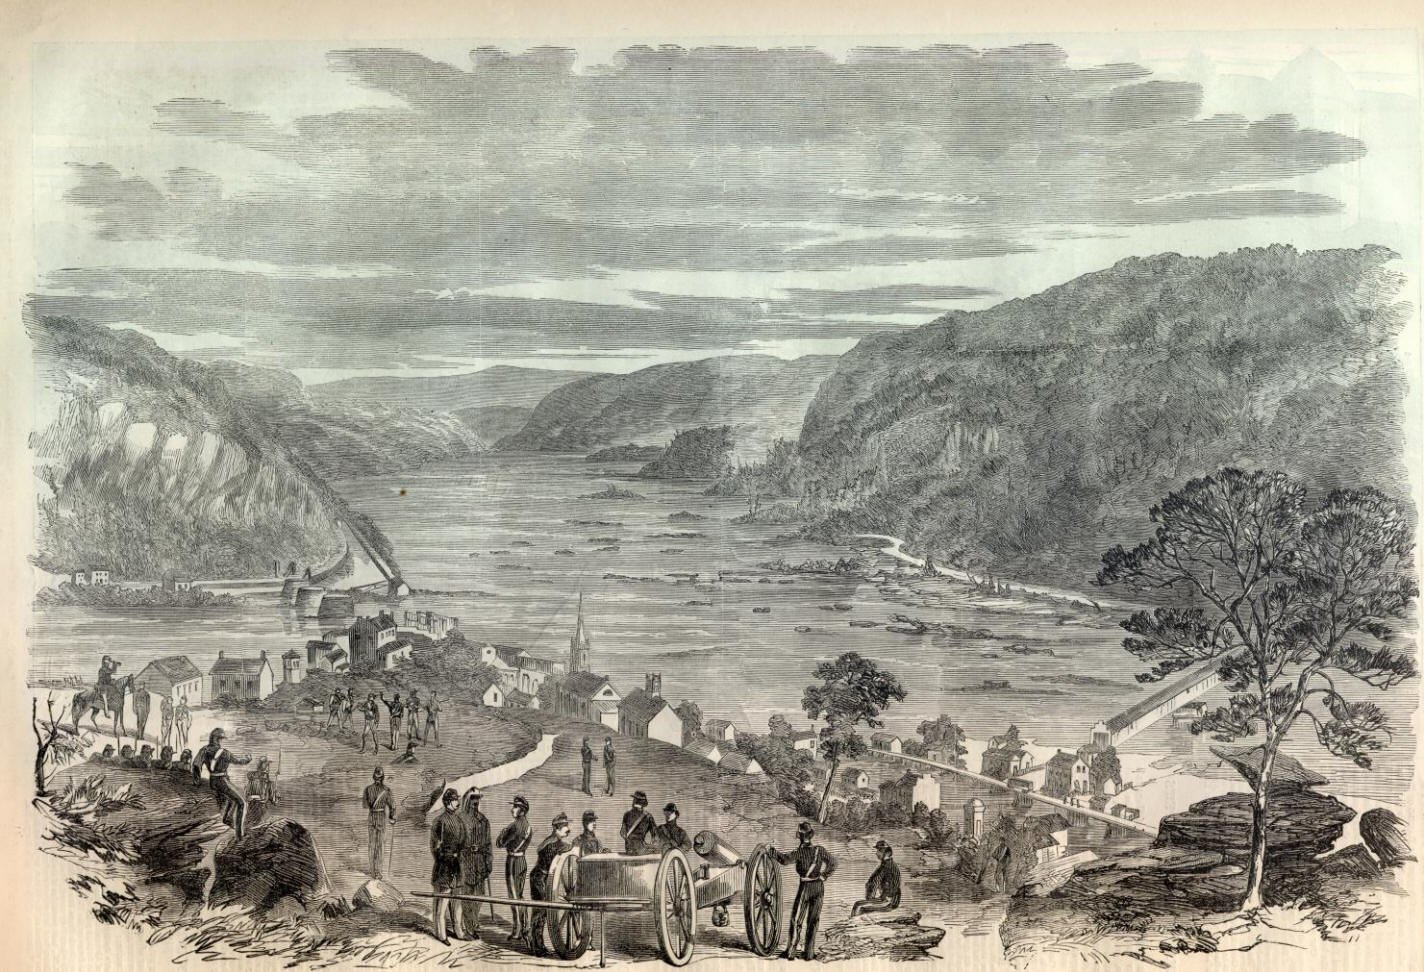 Harpers Ferry depicted under Union control in 1861. Courtesy of the Crossroads of War and NPS History Collection.